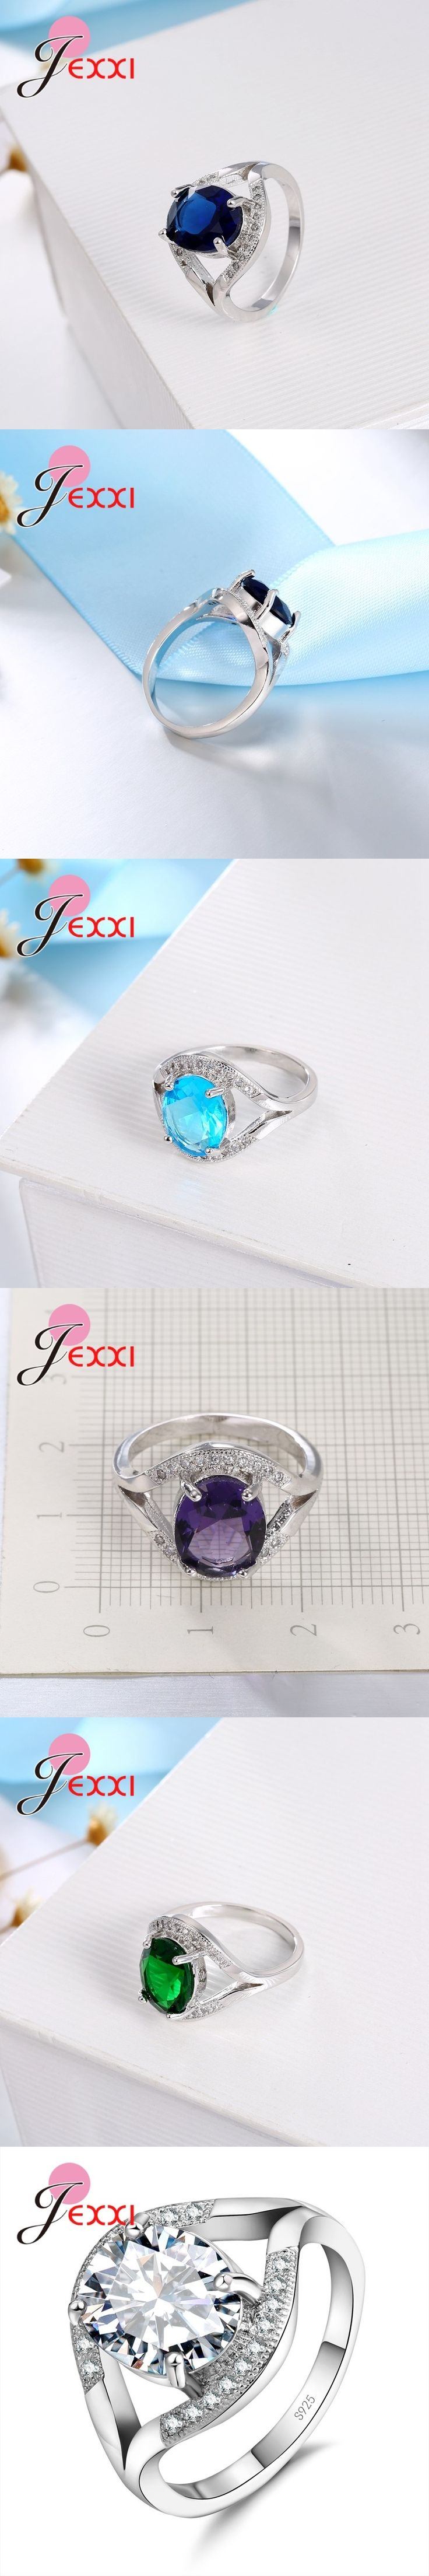 JEXXI Elegant 925 Sterling Silver Wedding Ring For Woman Fashion Band Jewelry AAA Austria Crystal Engagement Rings Bijoux Bague